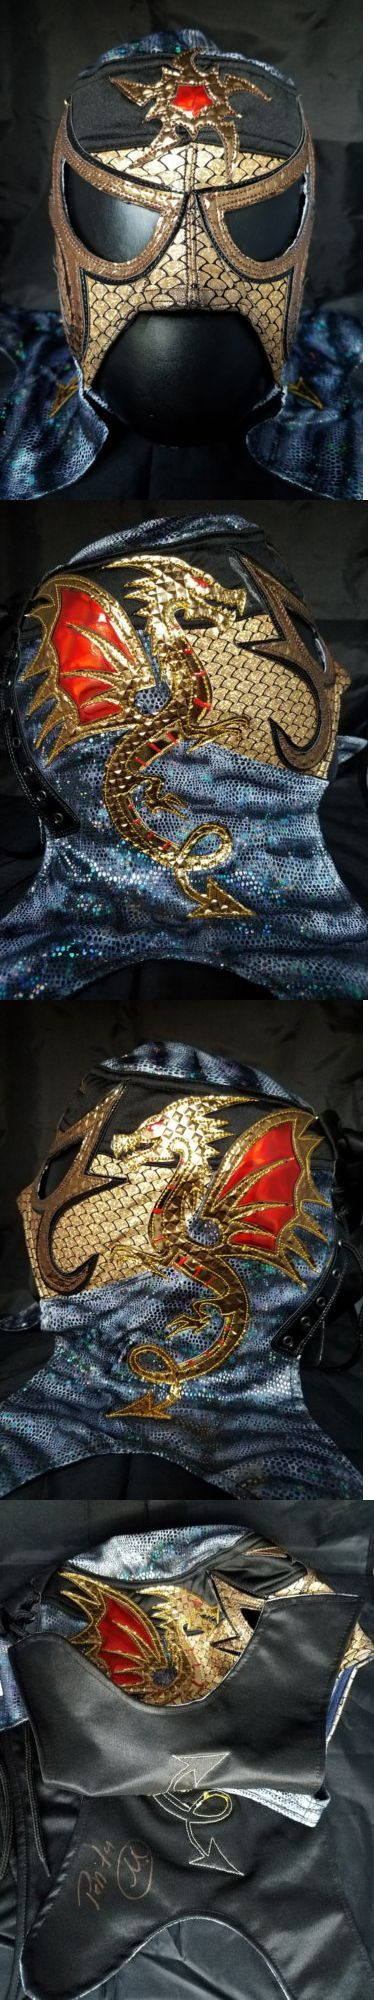 Wrestling 2902: Penta 0M Mask Signed Lucha Underground Wwe Aaa Cmll -> BUY IT NOW ONLY: $200 on eBay!